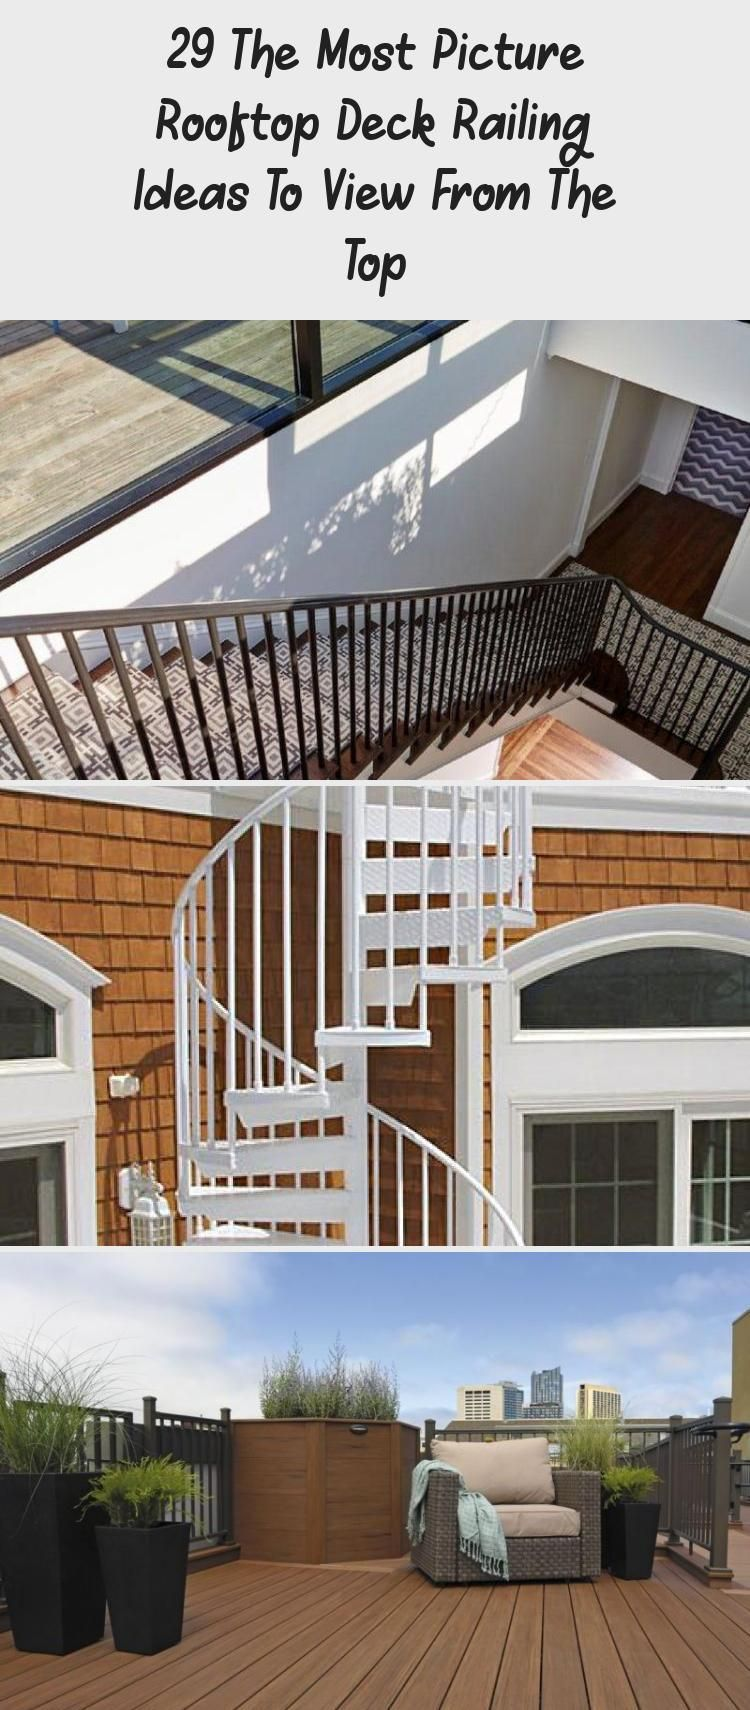 29 The Most Picture Rooftop Deck Railing Ideas To View ...